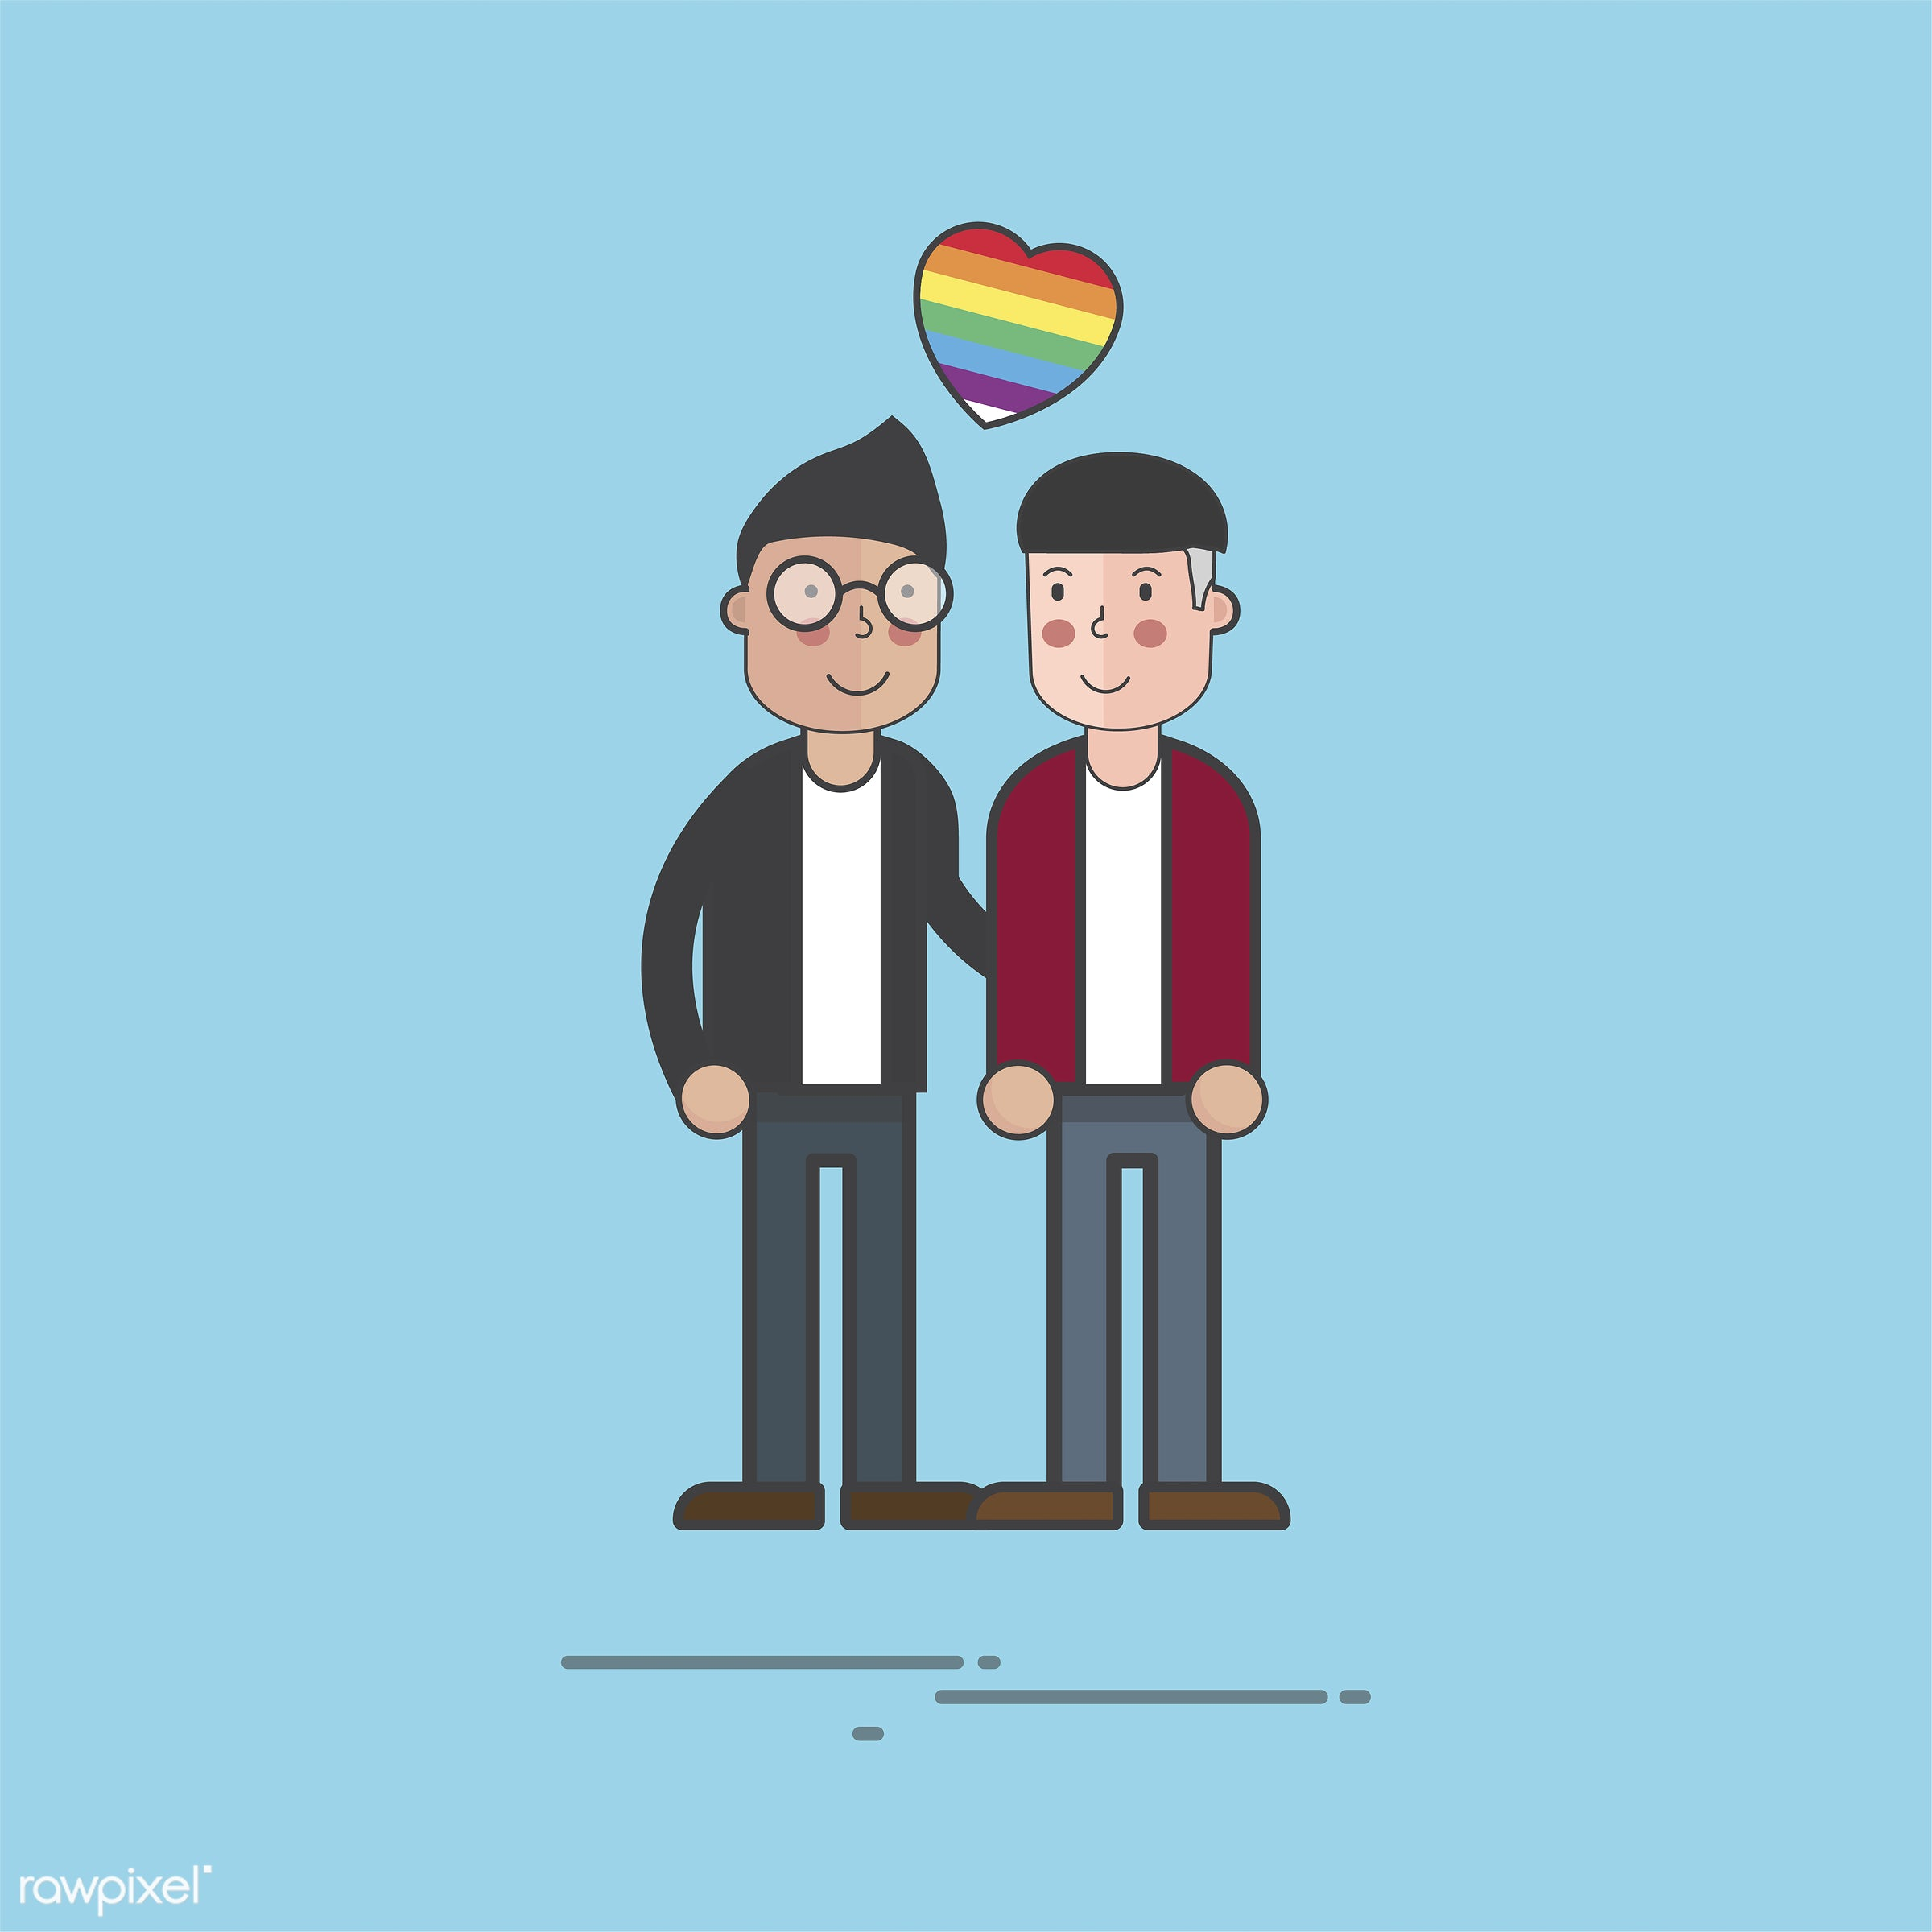 Illustration of people avatar - adult, cartoon, character, couple, dating, drawing, gay, gender, graphic, happiness, heart,...